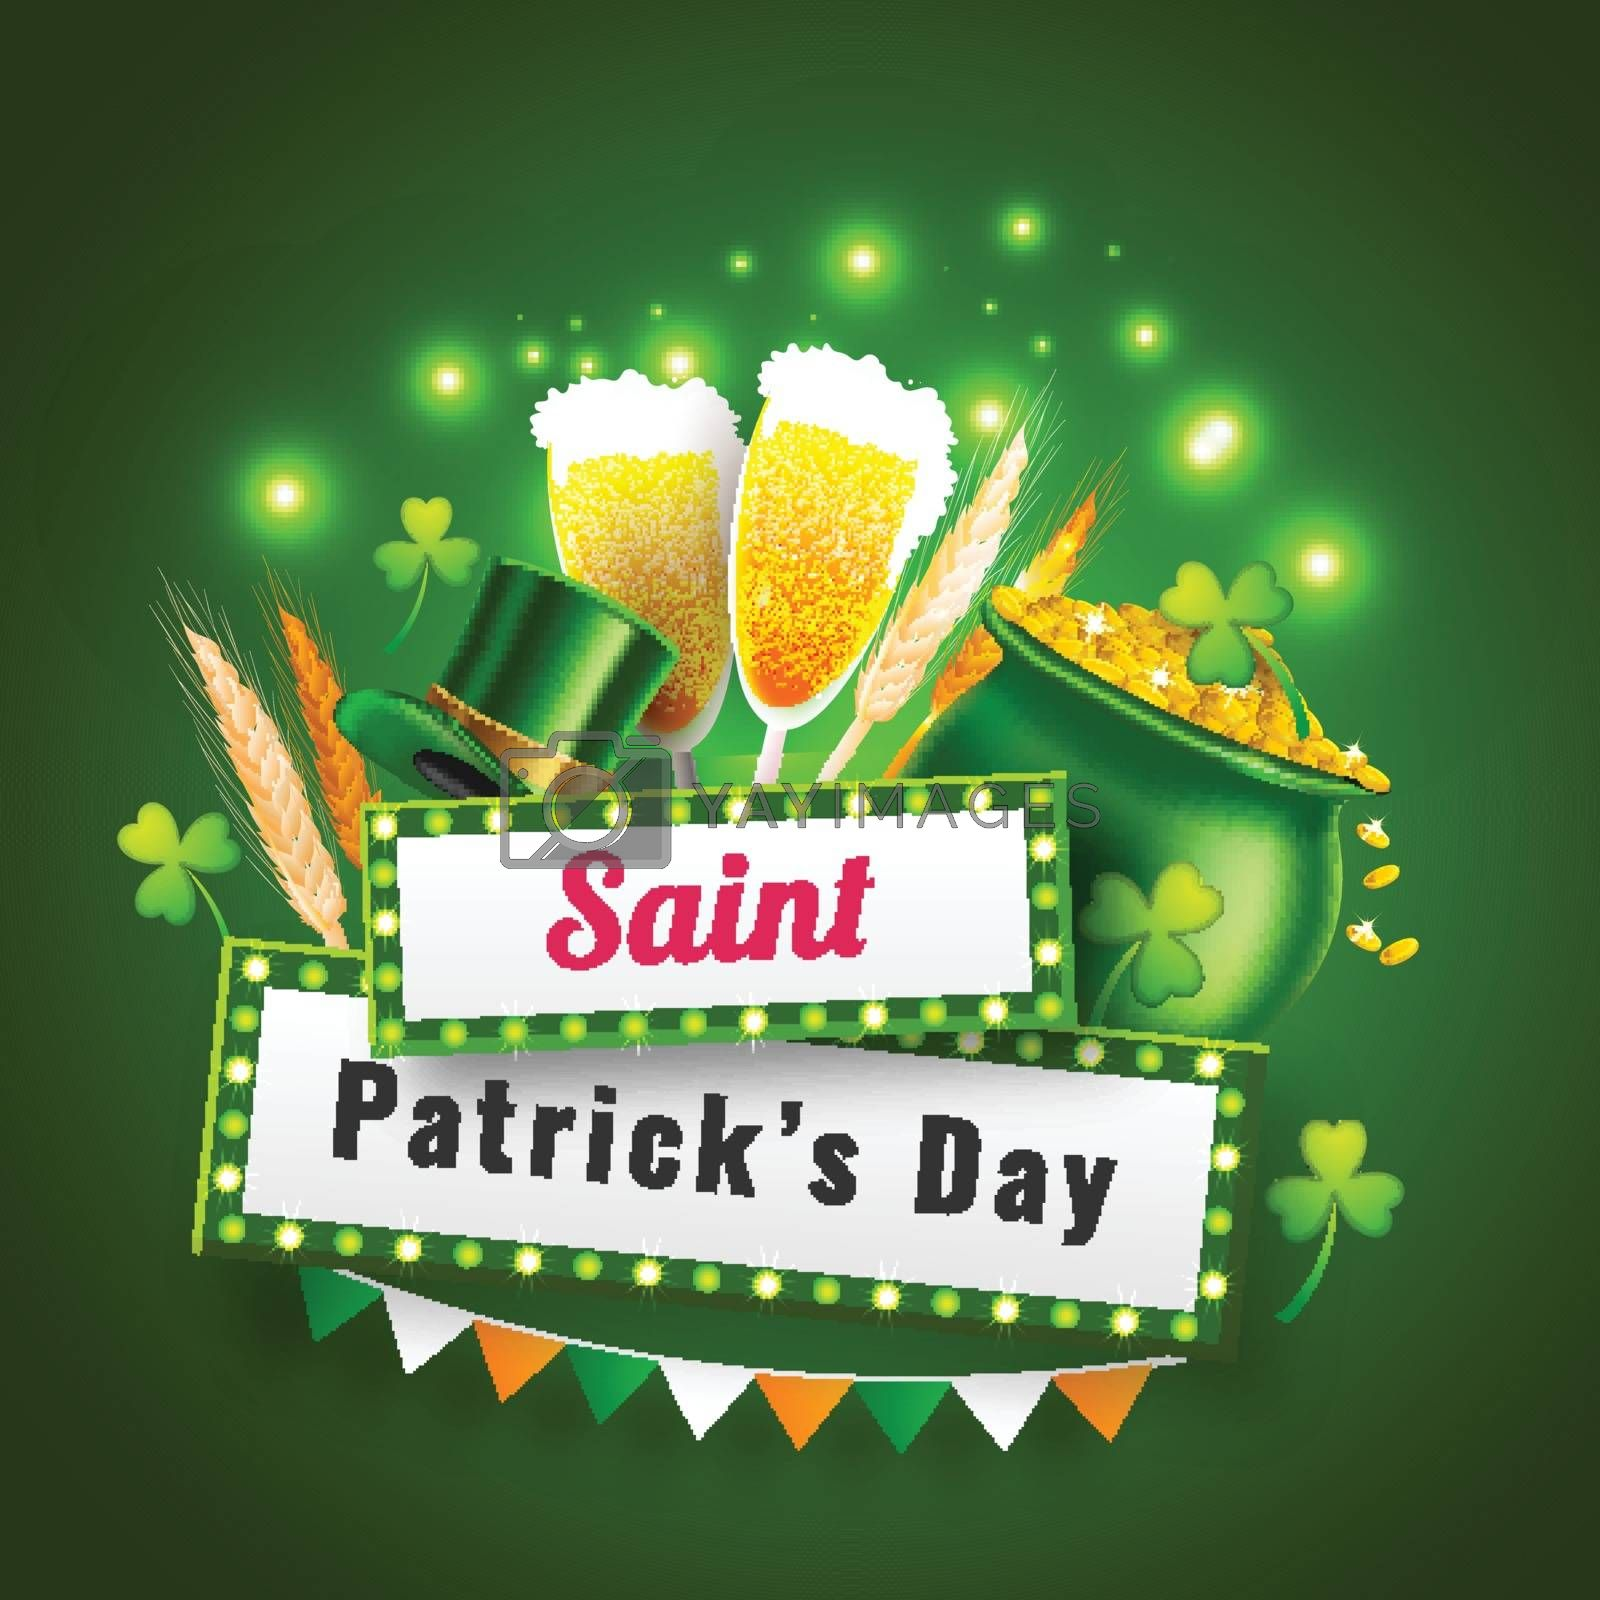 Royalty free image of Saint Patrick's Day celebration poster design with traditional f by aispl